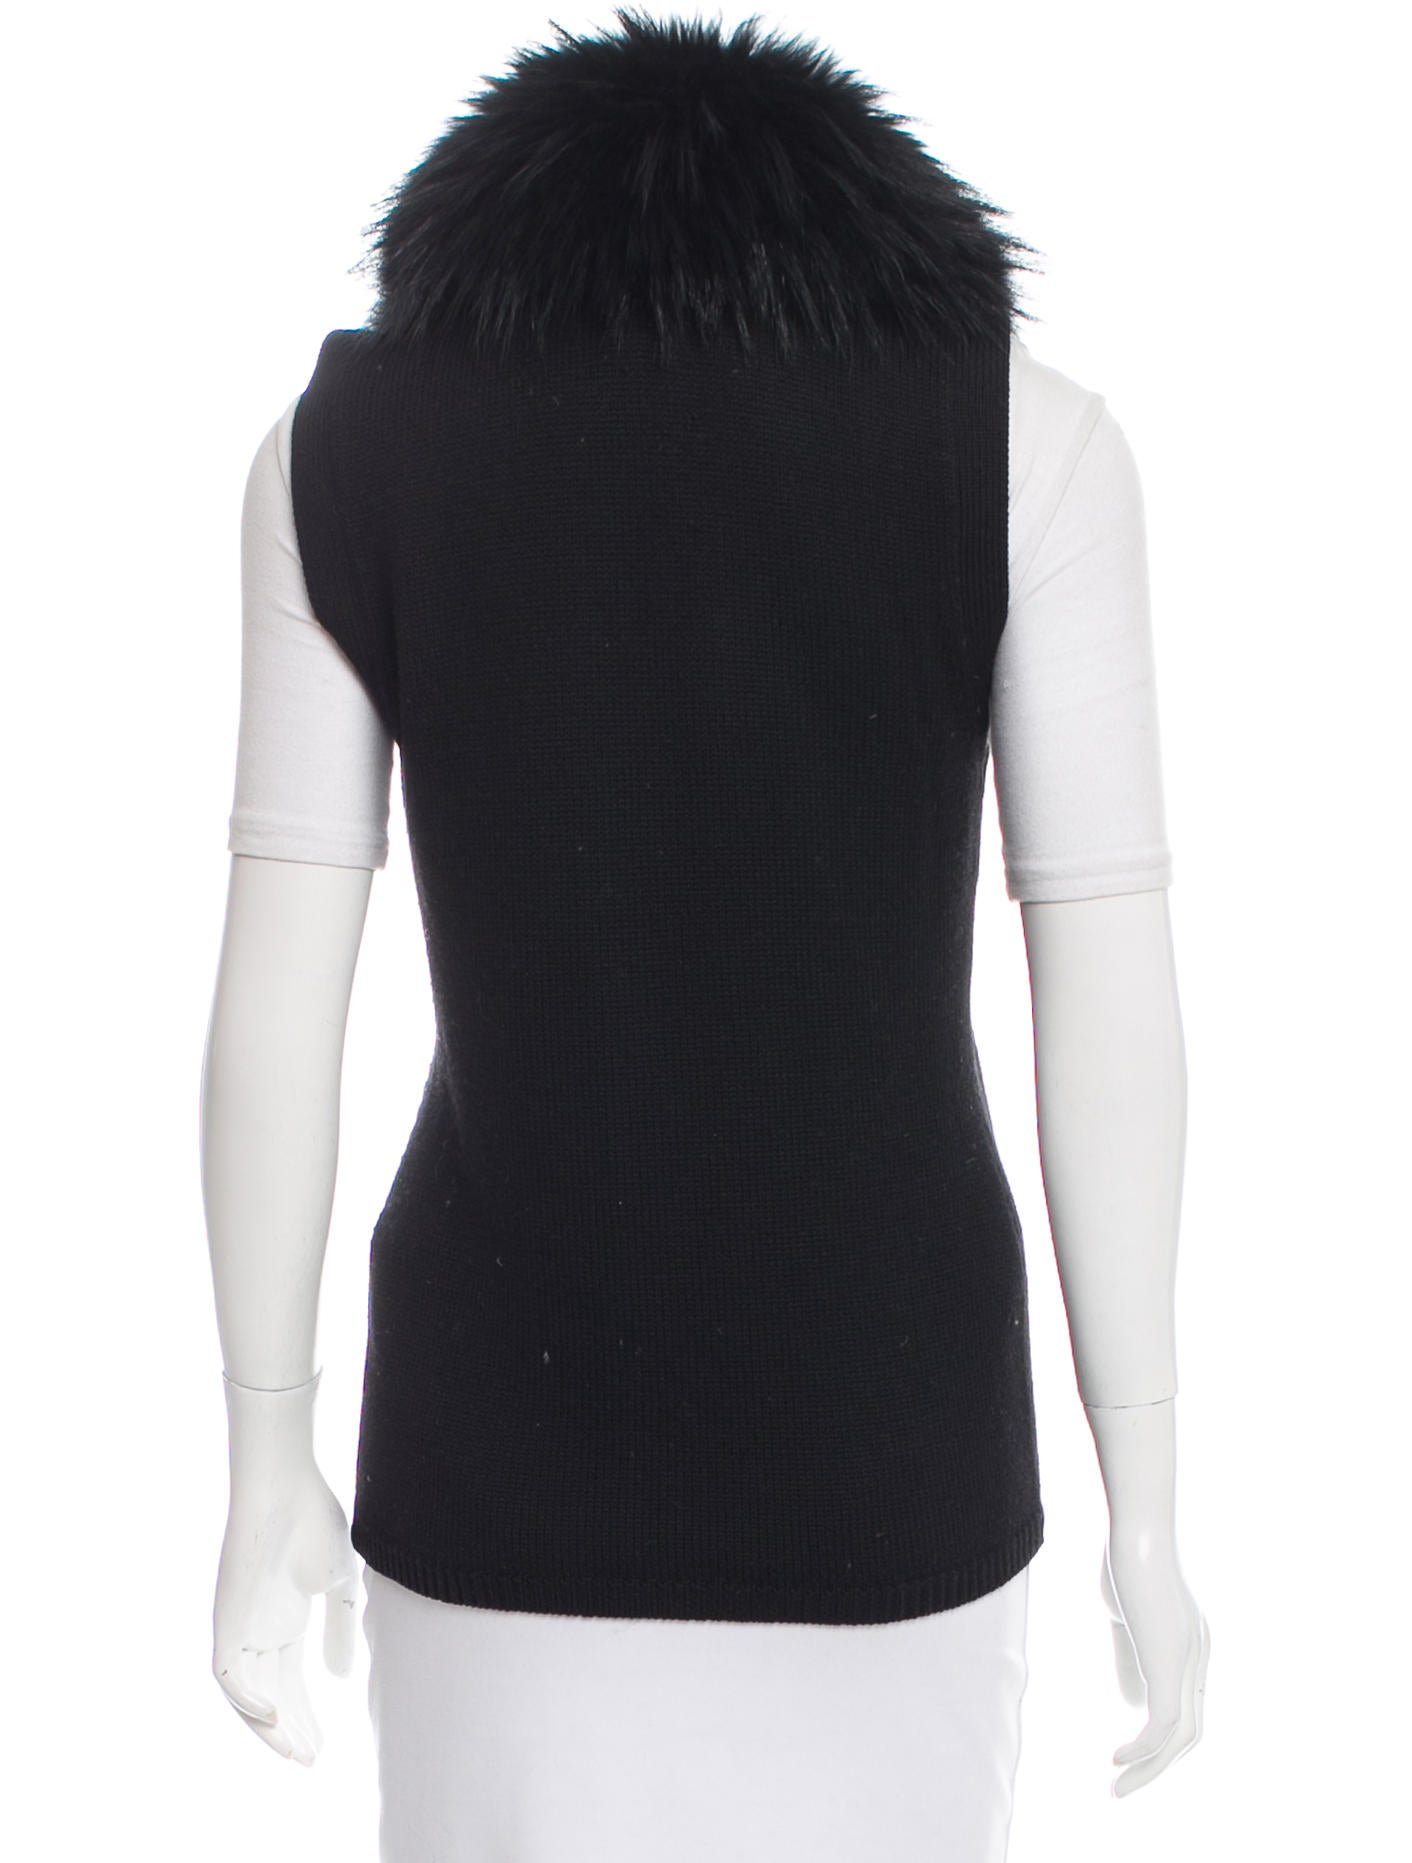 Men's & Women's Real Fur Vests From Glacier Wear Furs & Leather. Beautiful All Fur Vests Will Soon Become Your Favorite Wardrobe Accessory With Formal Wear Or Jeans! Select Quality Furs, Choose From Beaver, Coyote, Fox, Mink, Bobcat, Lynx and More. Buy Direct And Save, Made in USA.